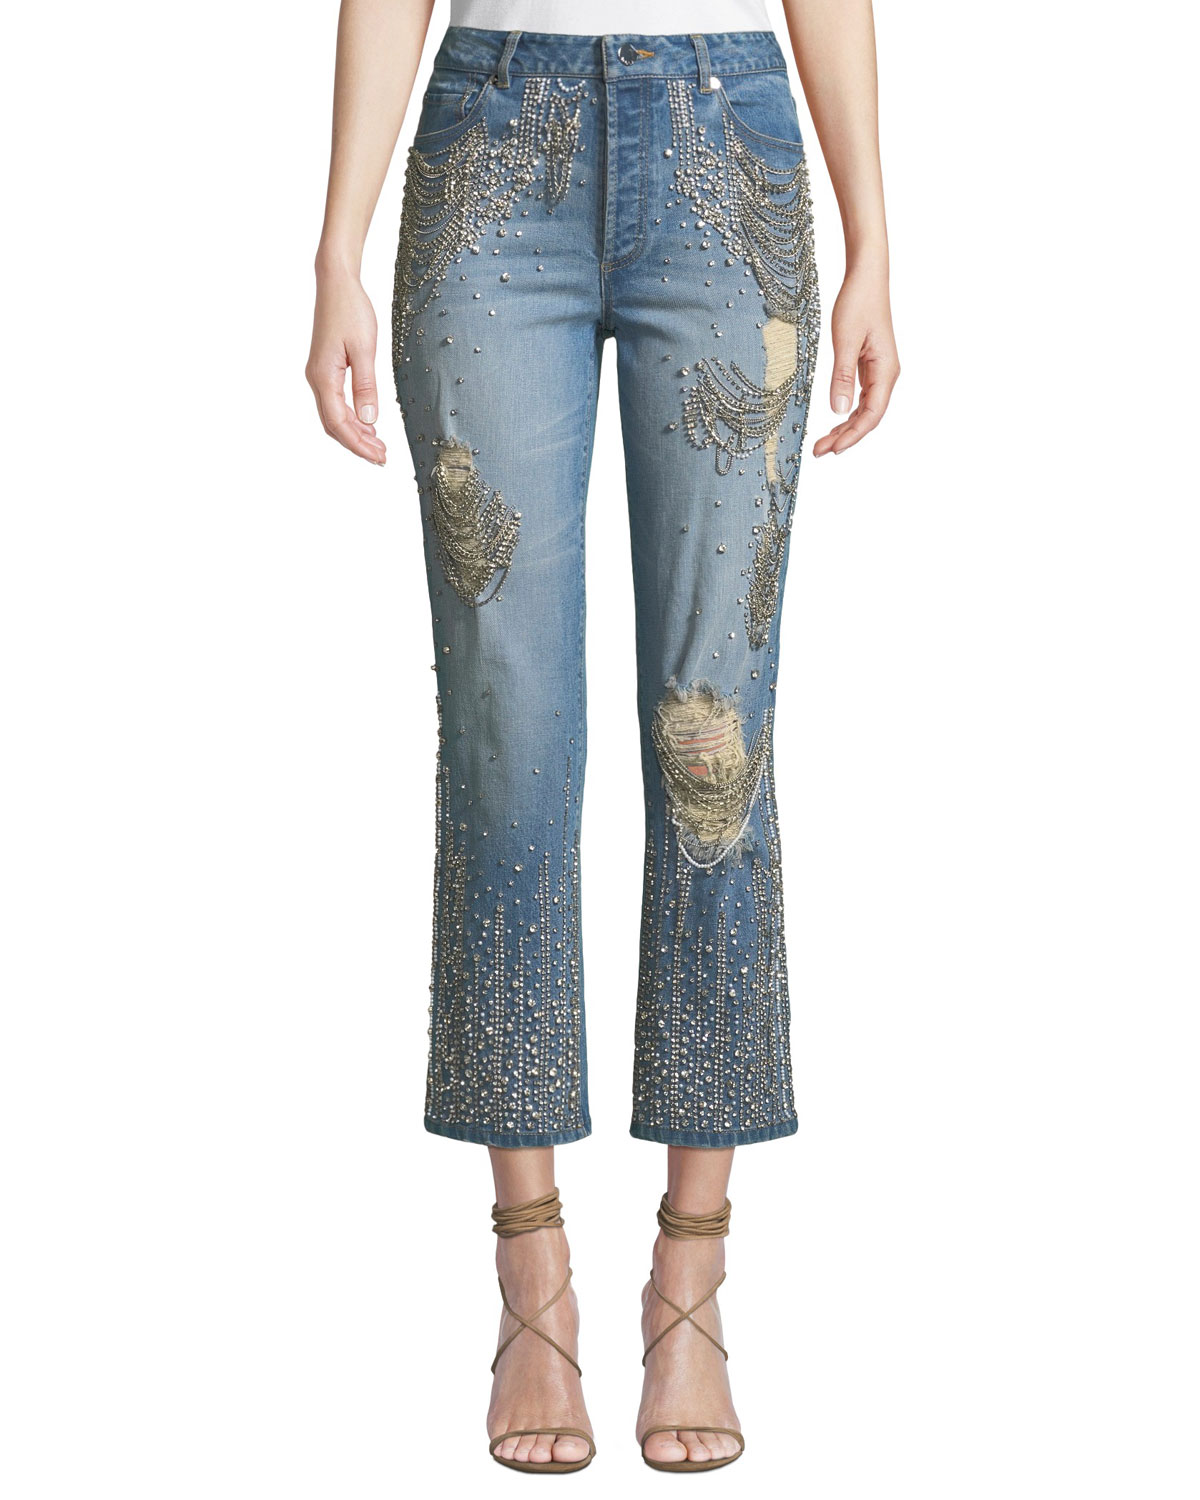 AO.LA BY ALICE+OLIVIA Amazing Embellished Ripped High-Rise Boyfriend Jeans in Medium Blue